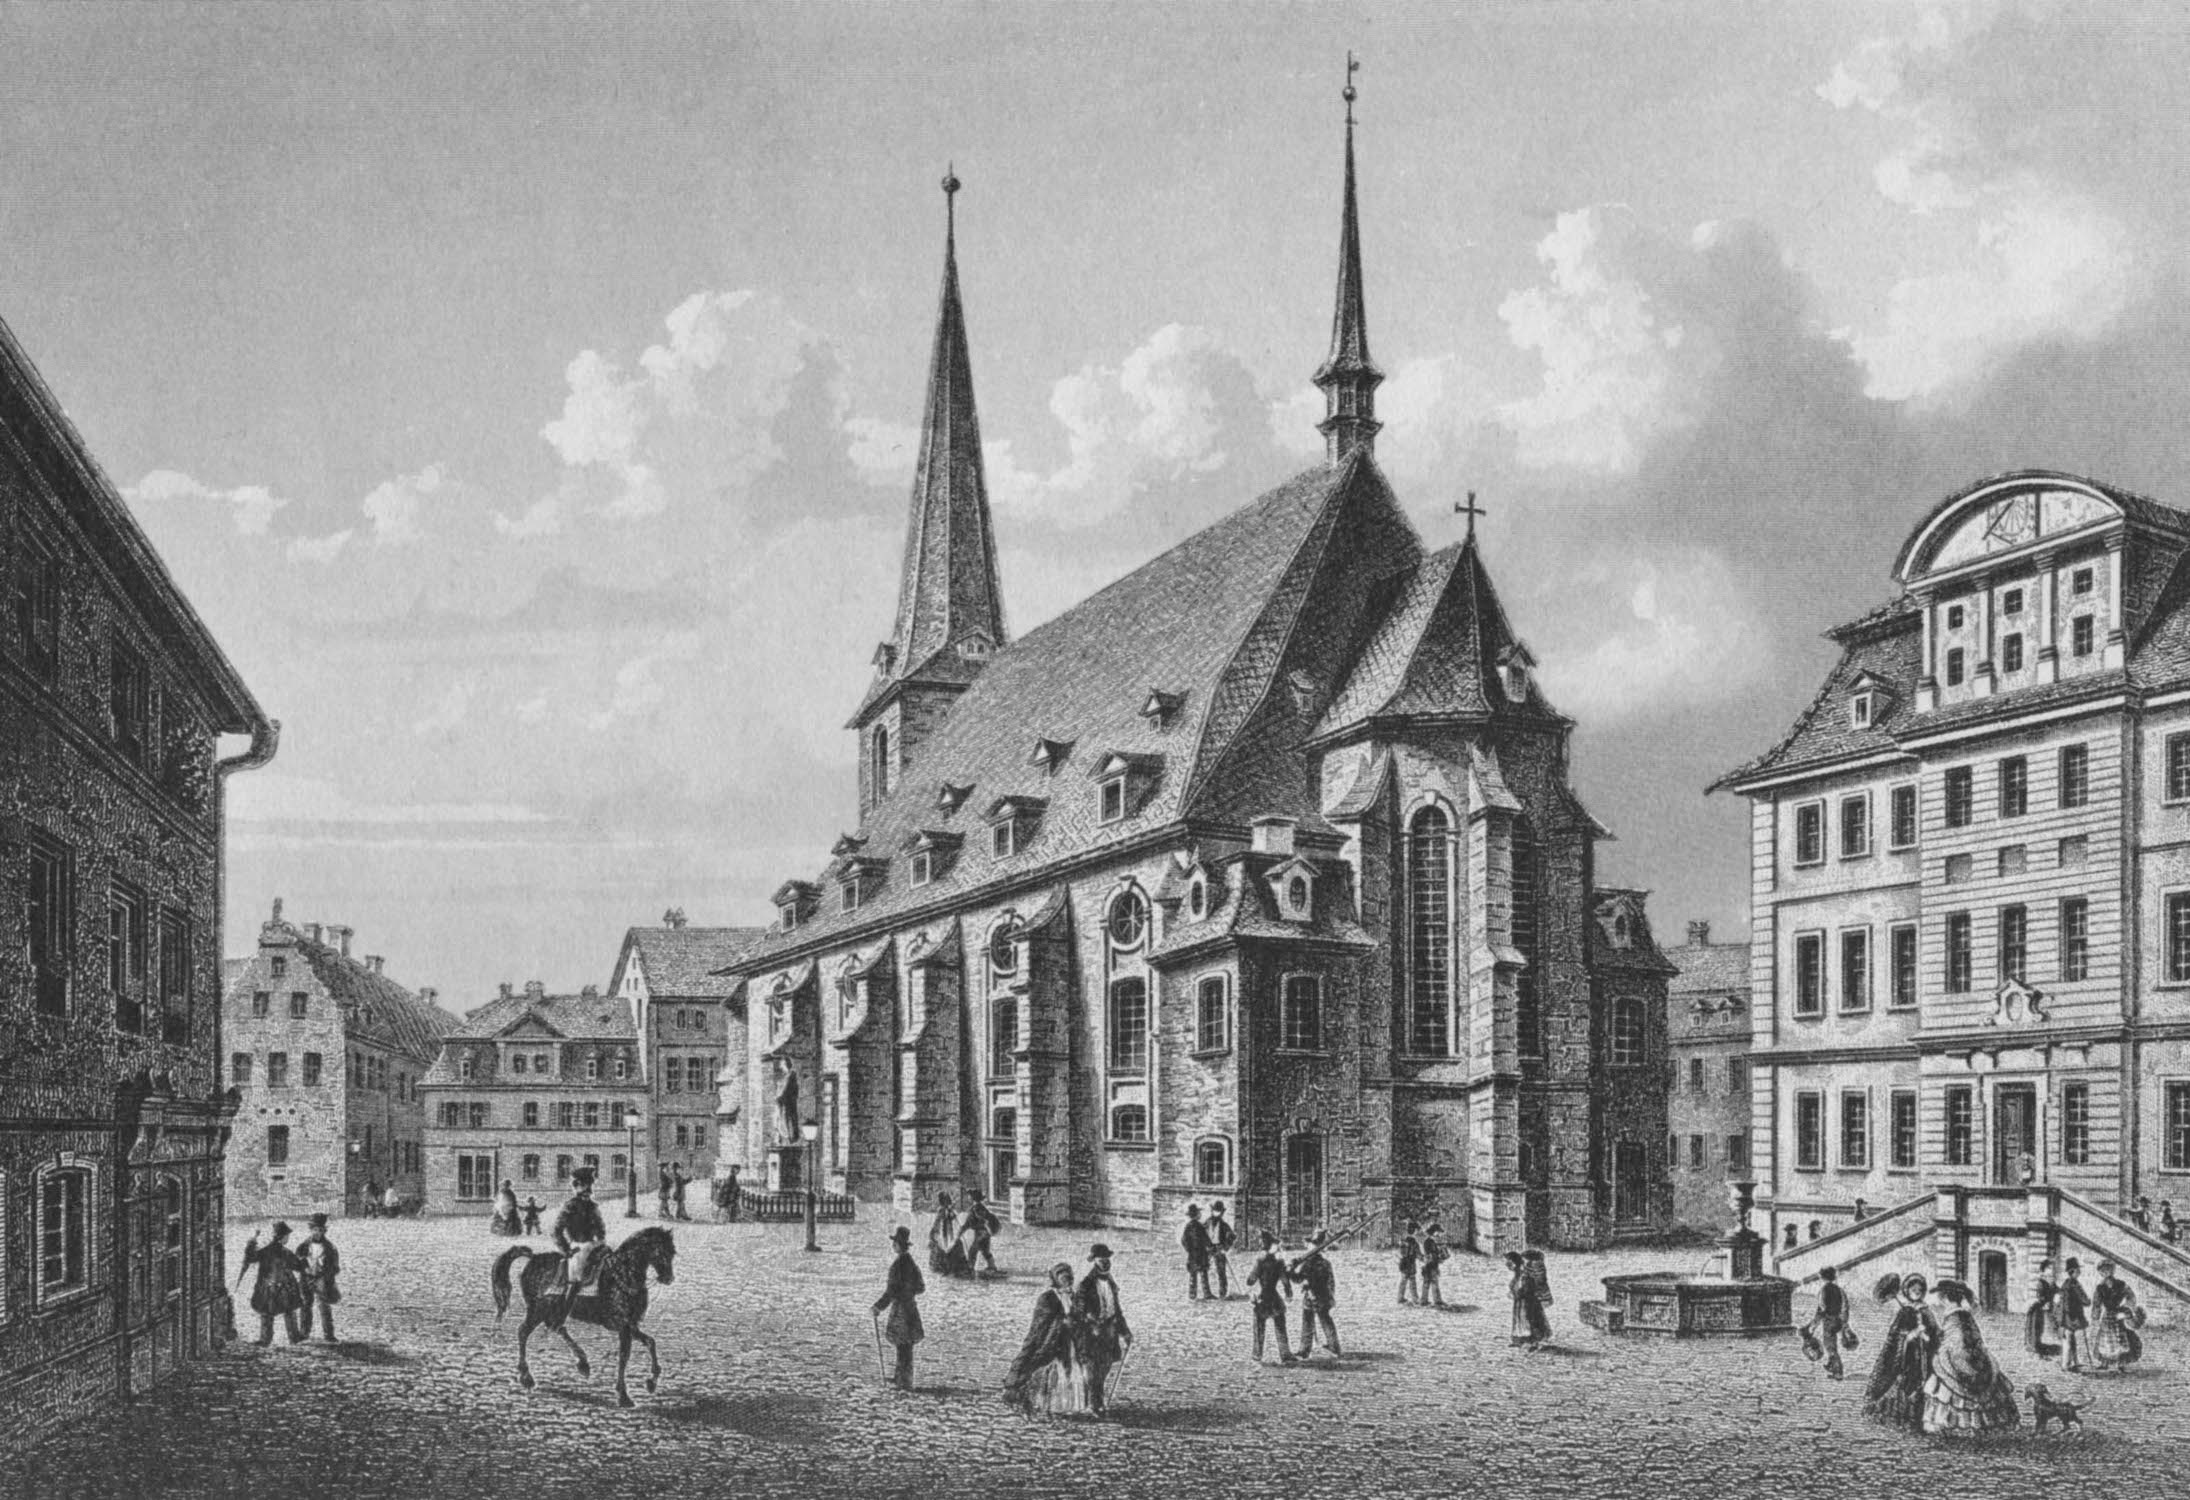 A view of the Herderplatz in Weimar from the southeast (etching by L. Oeder, 1840). The church of Saint-Paul and Saint-Peter, also known as the Herderkirche, saw the premieres of several Bach cantatas. John Eliot Gardiner suggests that Bach cantatas using a festive orchestra were first performed there, including his first cantata for Christmas, Christen, ätzet diesen Tag, BWV 63 and Der Himmel lacht! Die Erde jubilieret, BWV 31 for the Easter Sunday of 1715, scored for soloists, a five-part choir and three instrumental groups. Bach frequently played the organ, and two of his sons were baptized in the church.